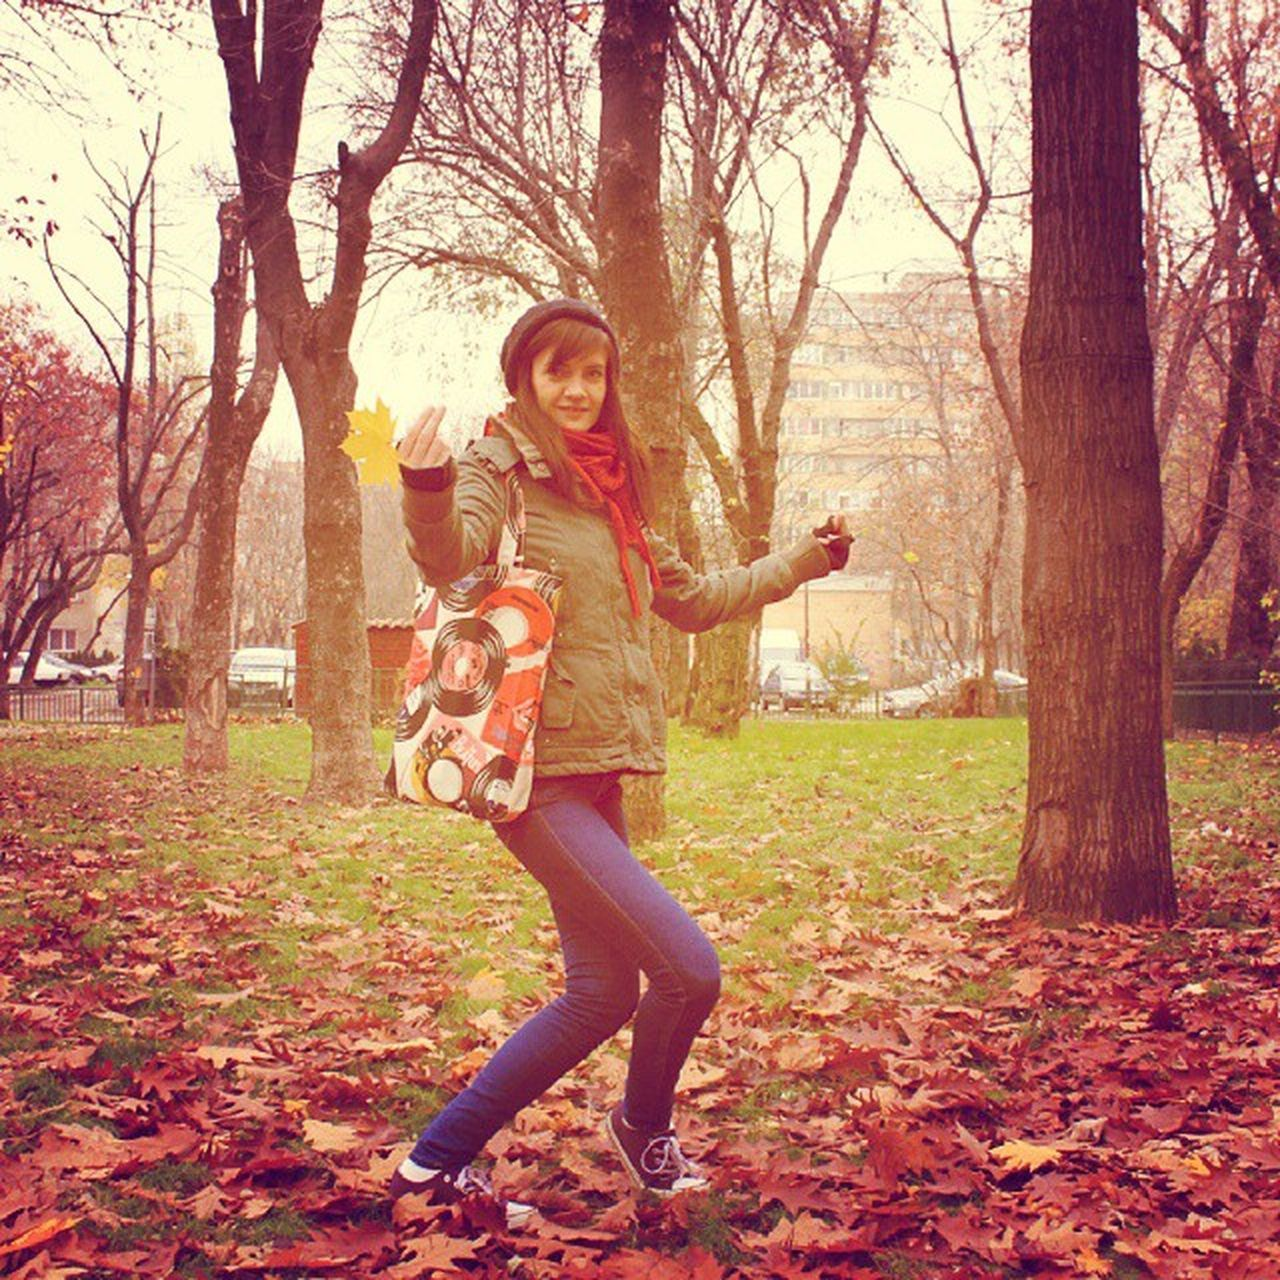 autumn, tree, fashion, smiling, full length, casual clothing, lifestyles, women, standing, cheerful, fun, adult, happiness, nature, only women, young adult, outdoors, leisure activity, young women, arts culture and entertainment, portrait, looking at camera, leaf, motion, adults only, people, day, real people, beauty in nature, musician